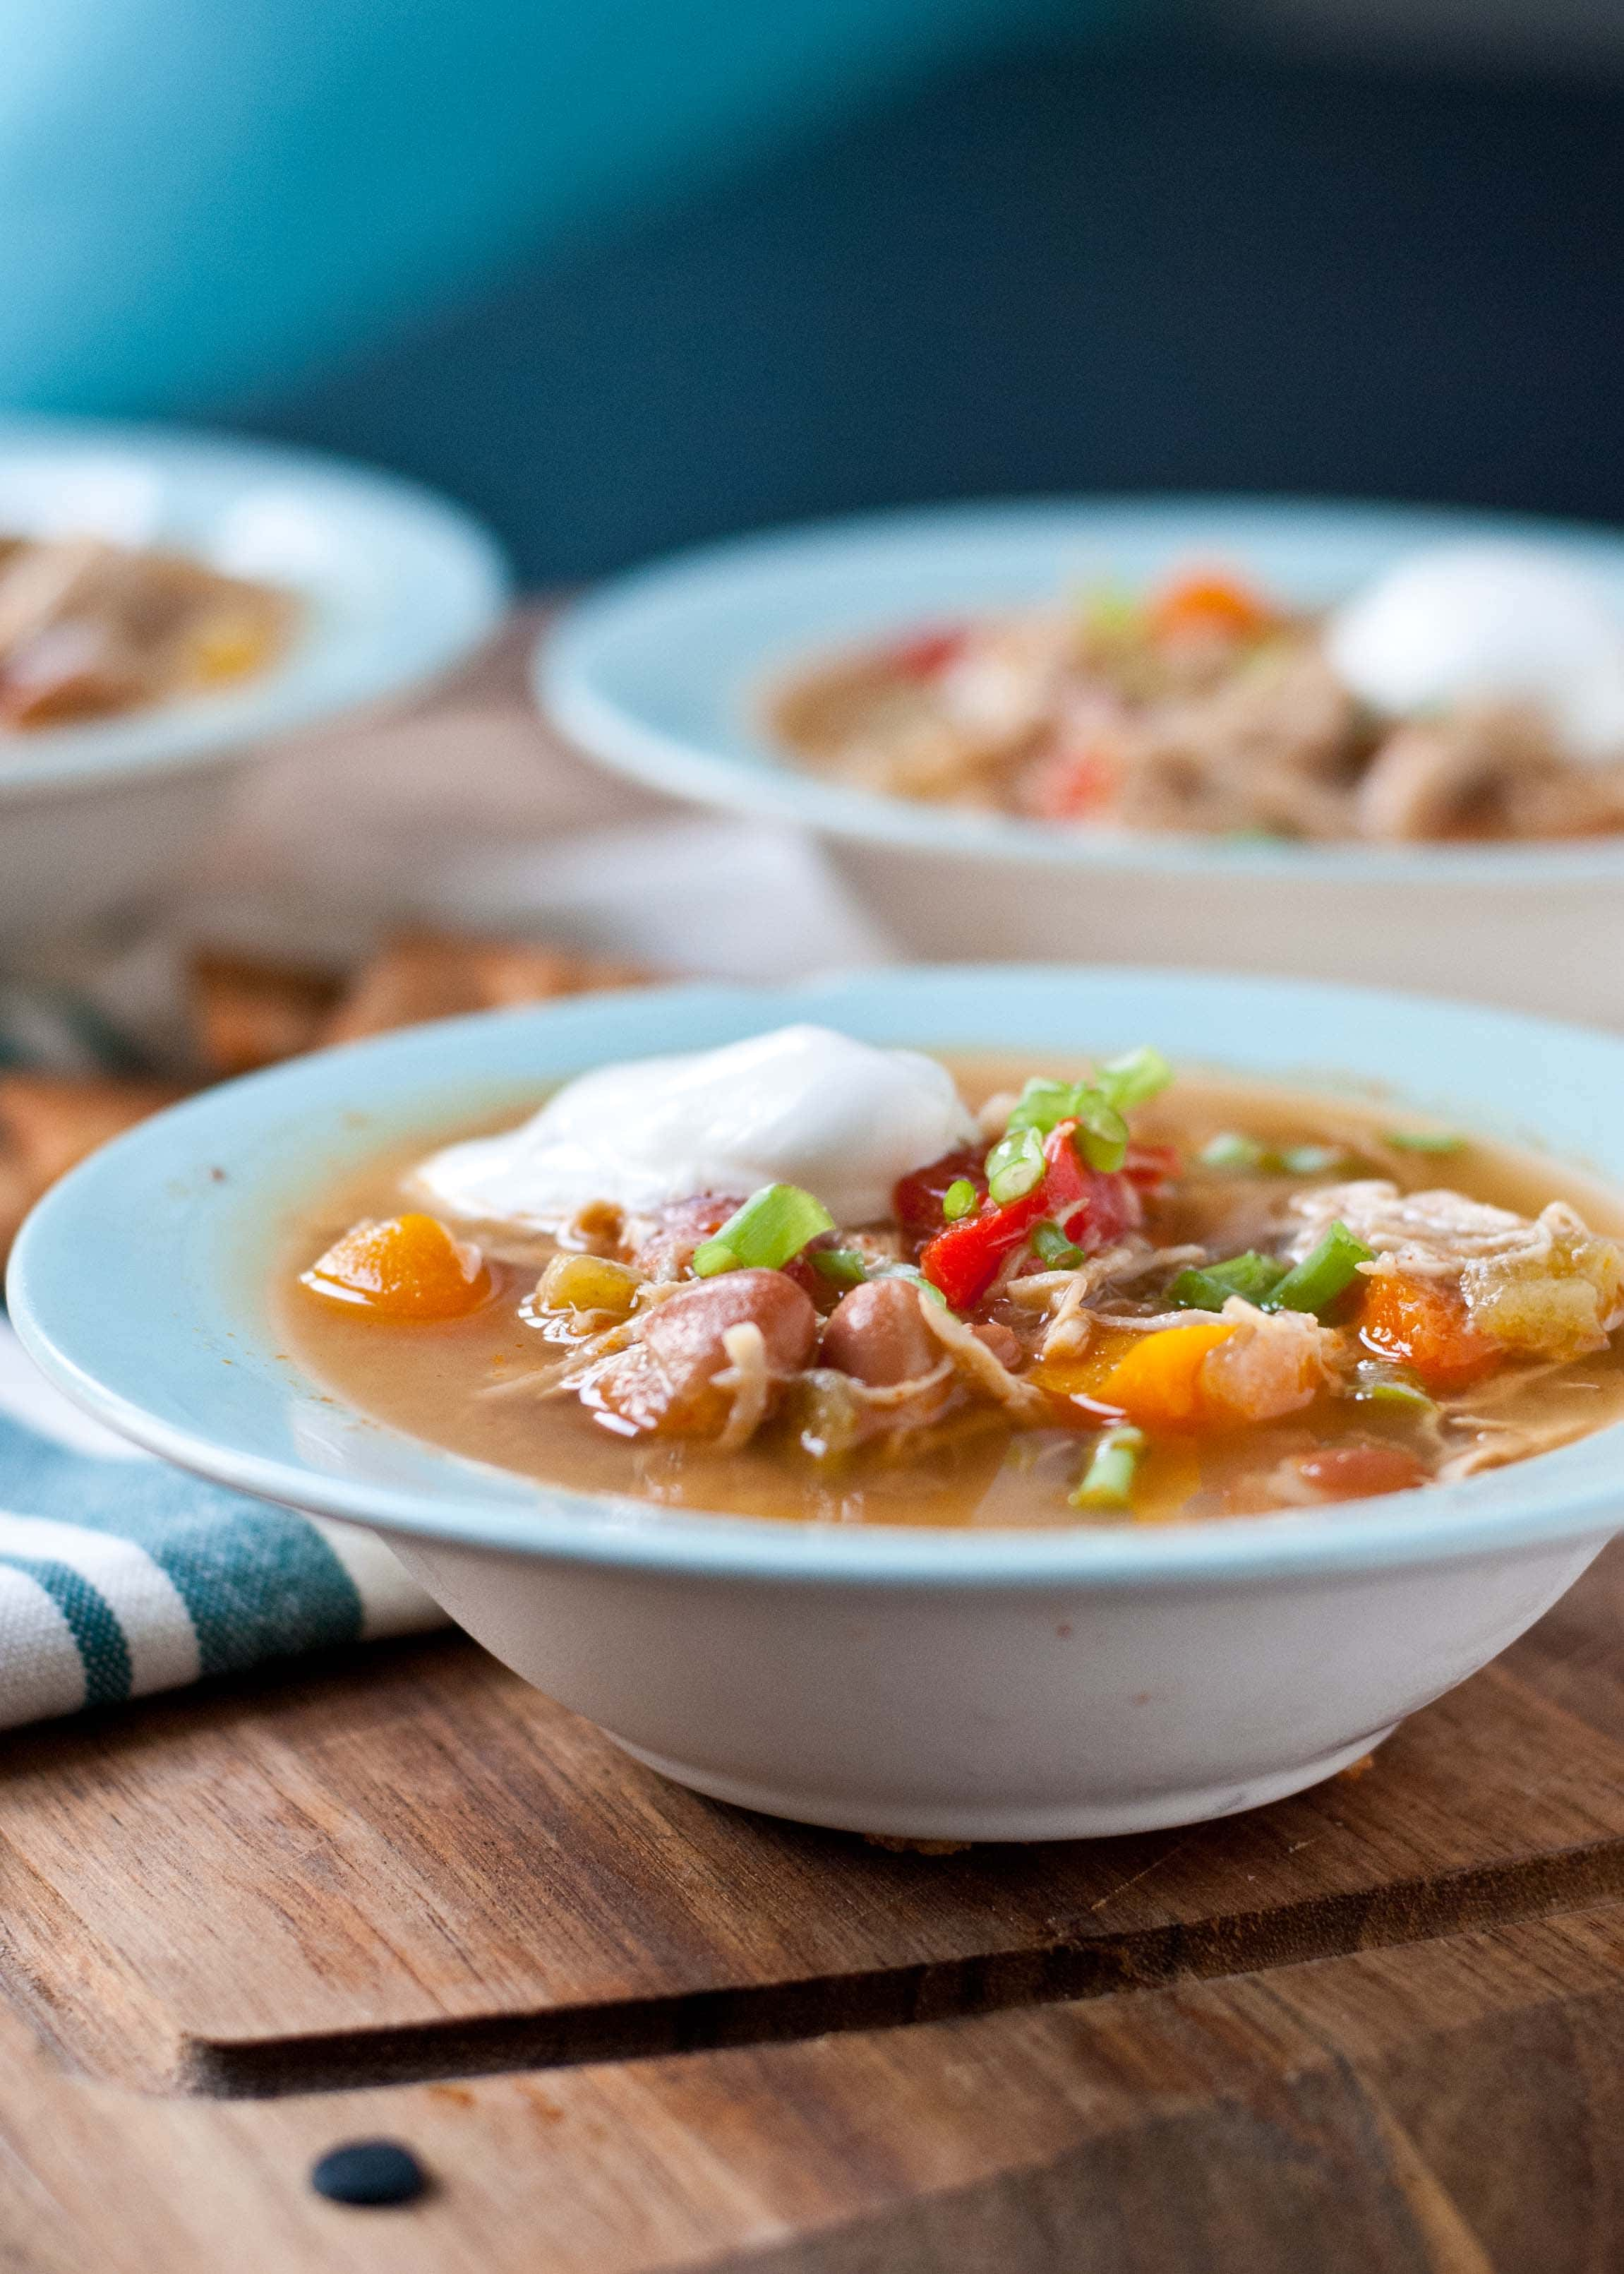 Cozy up with a bowl of this Slow Cooker White Chicken Chili!